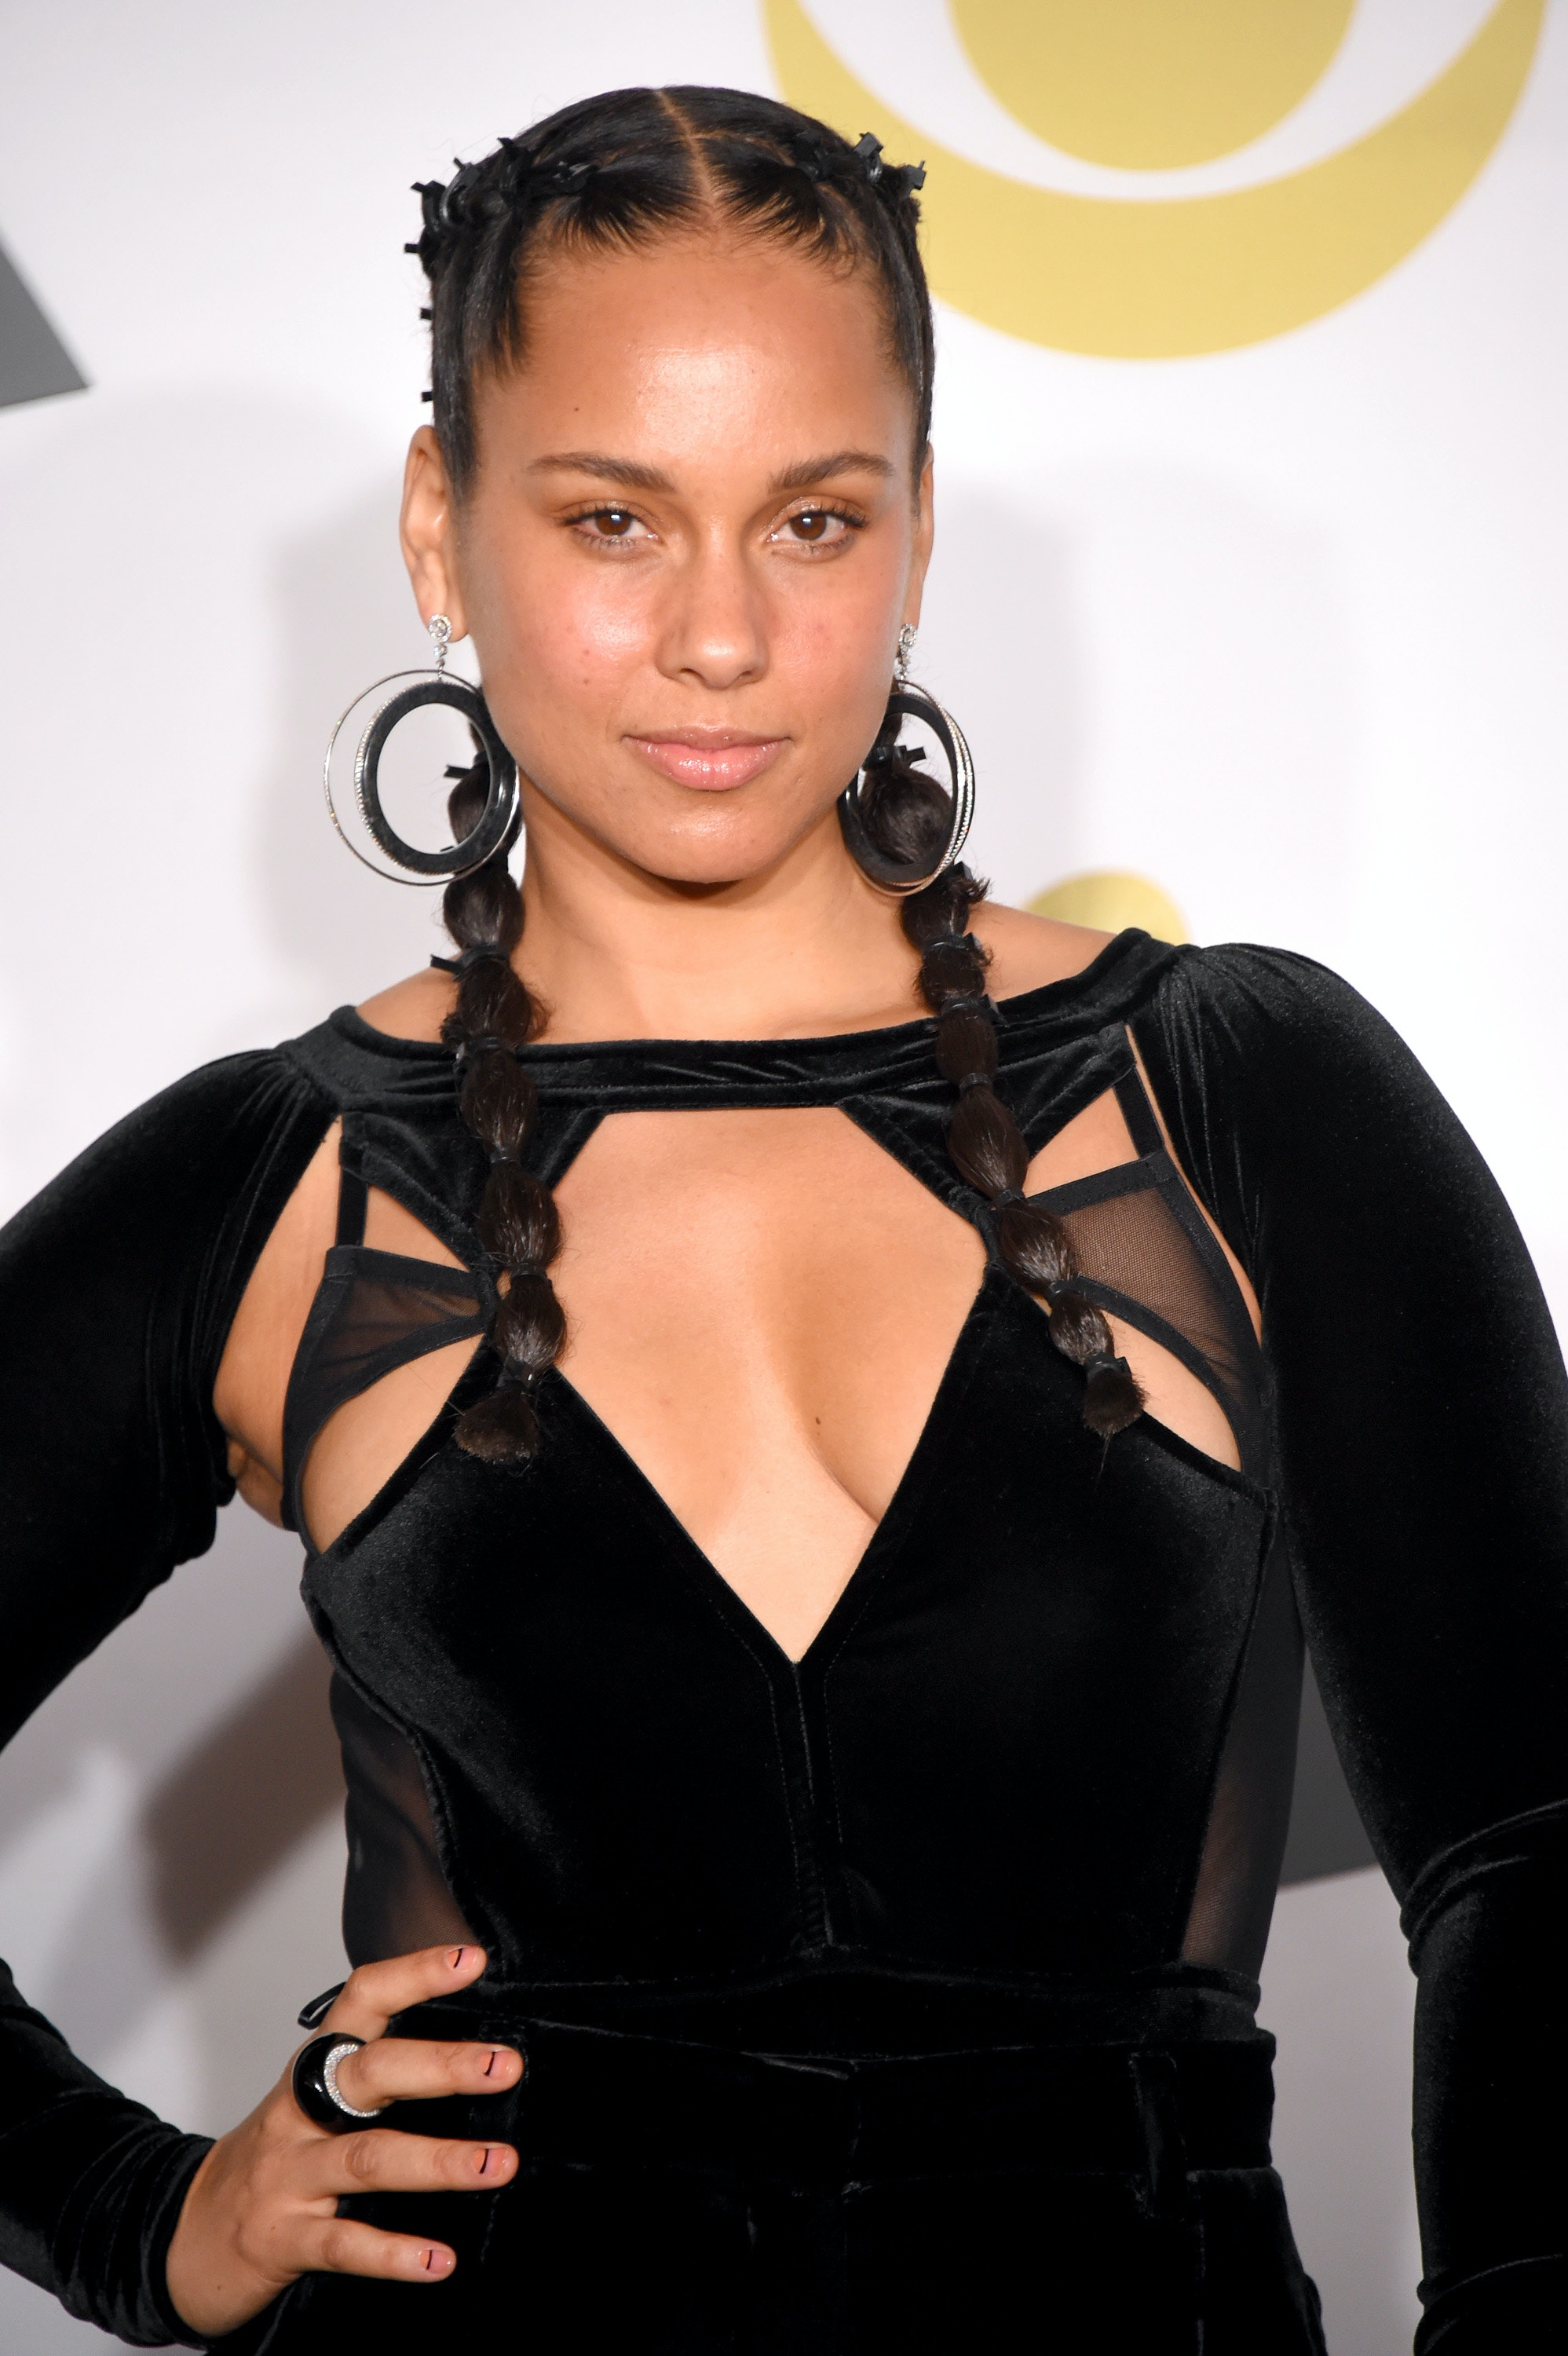 Alicia Keys New Short Red Hair Proves Shes A Girl On Fire